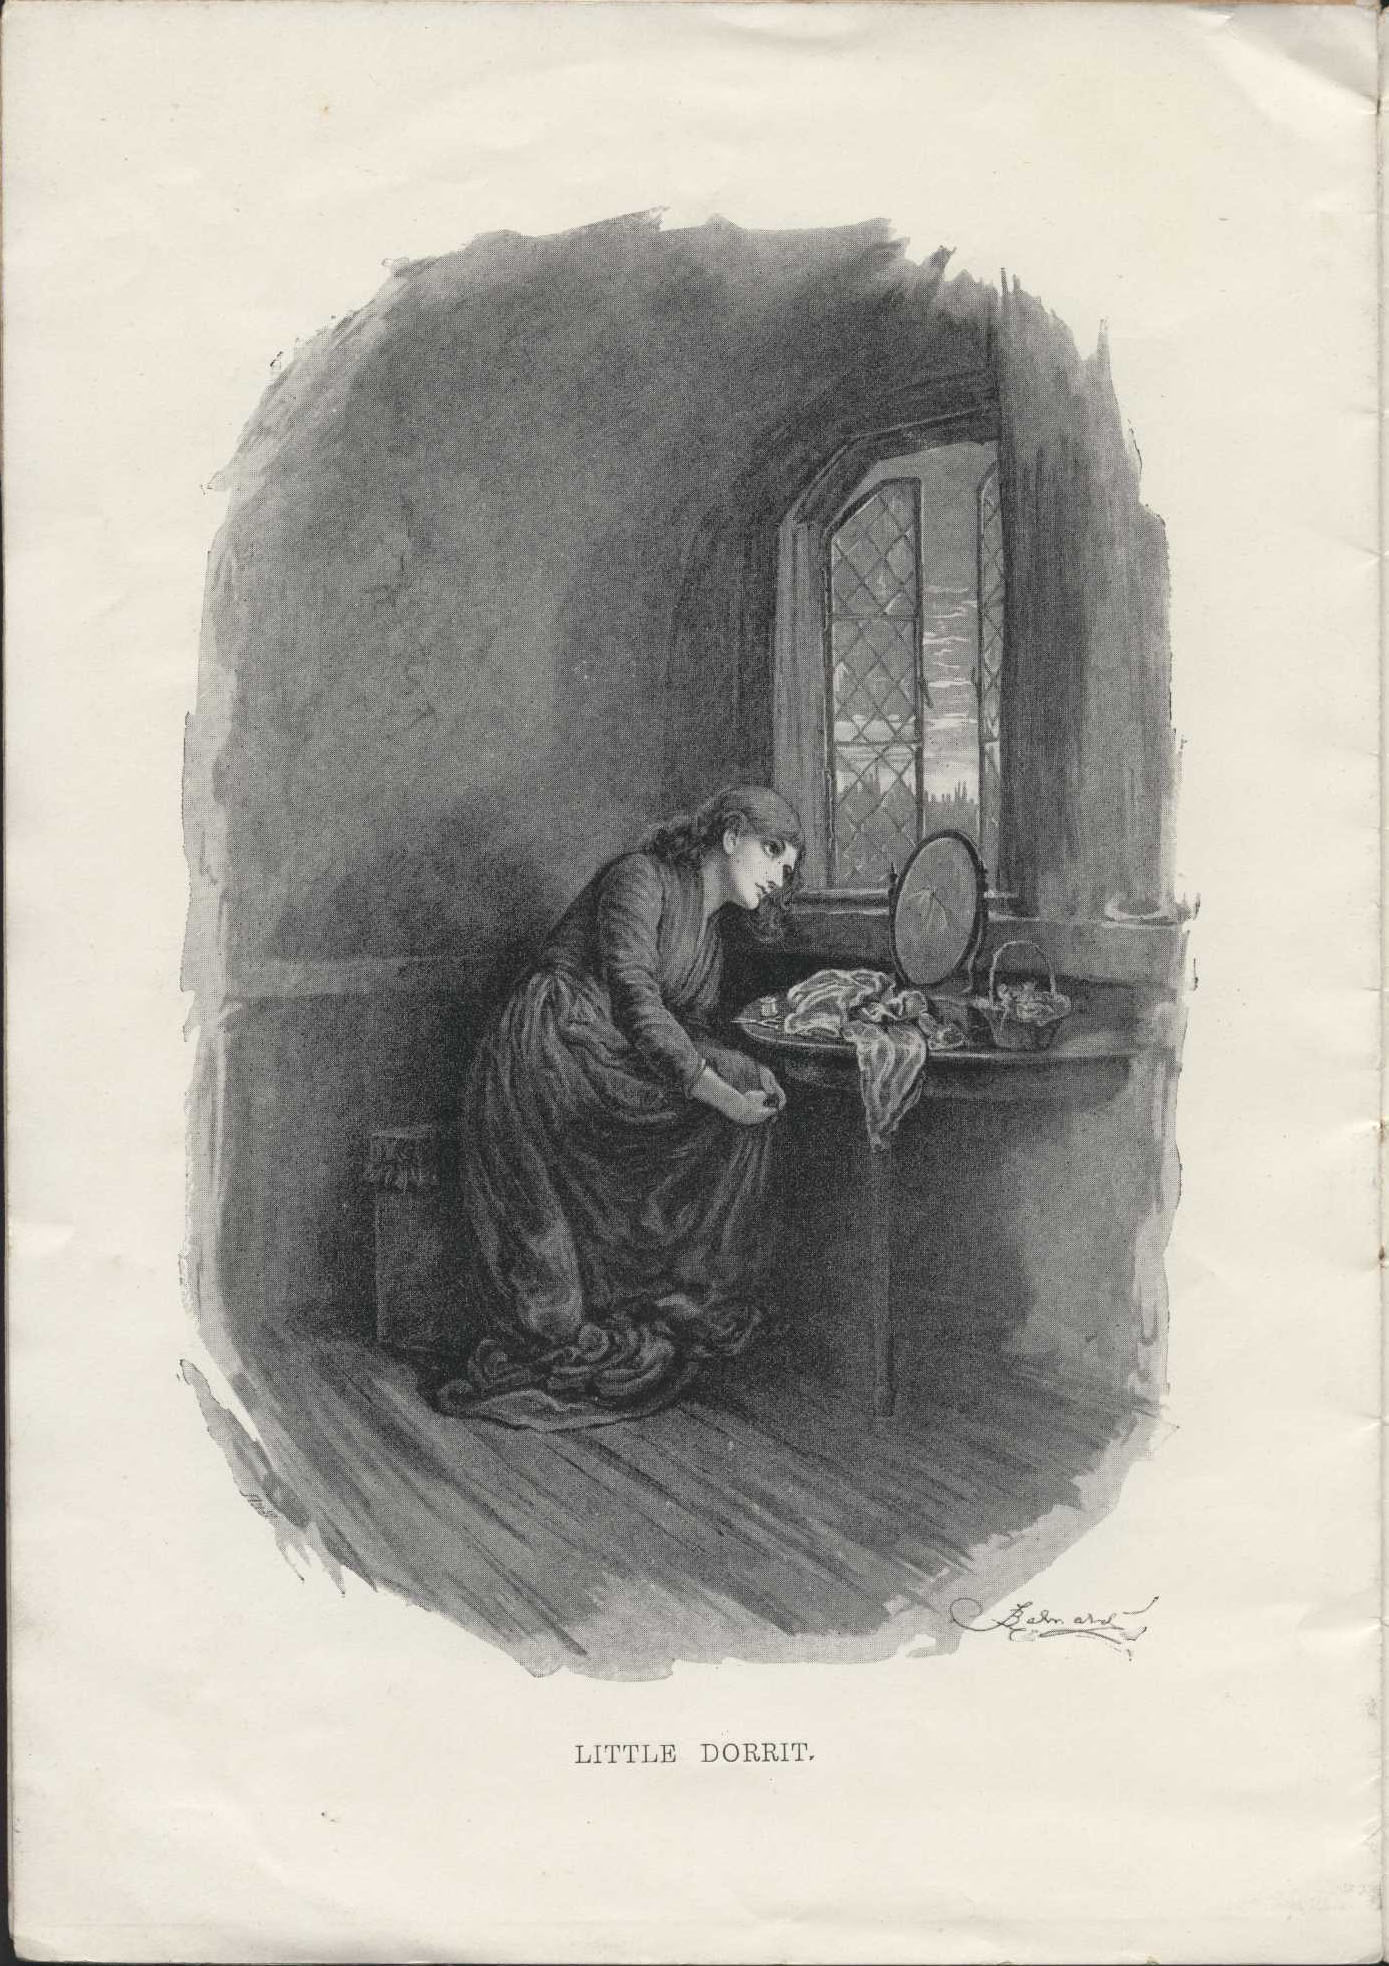 Frederick Barnard. Character sketches from Dickens. London: Cassell, 1896.